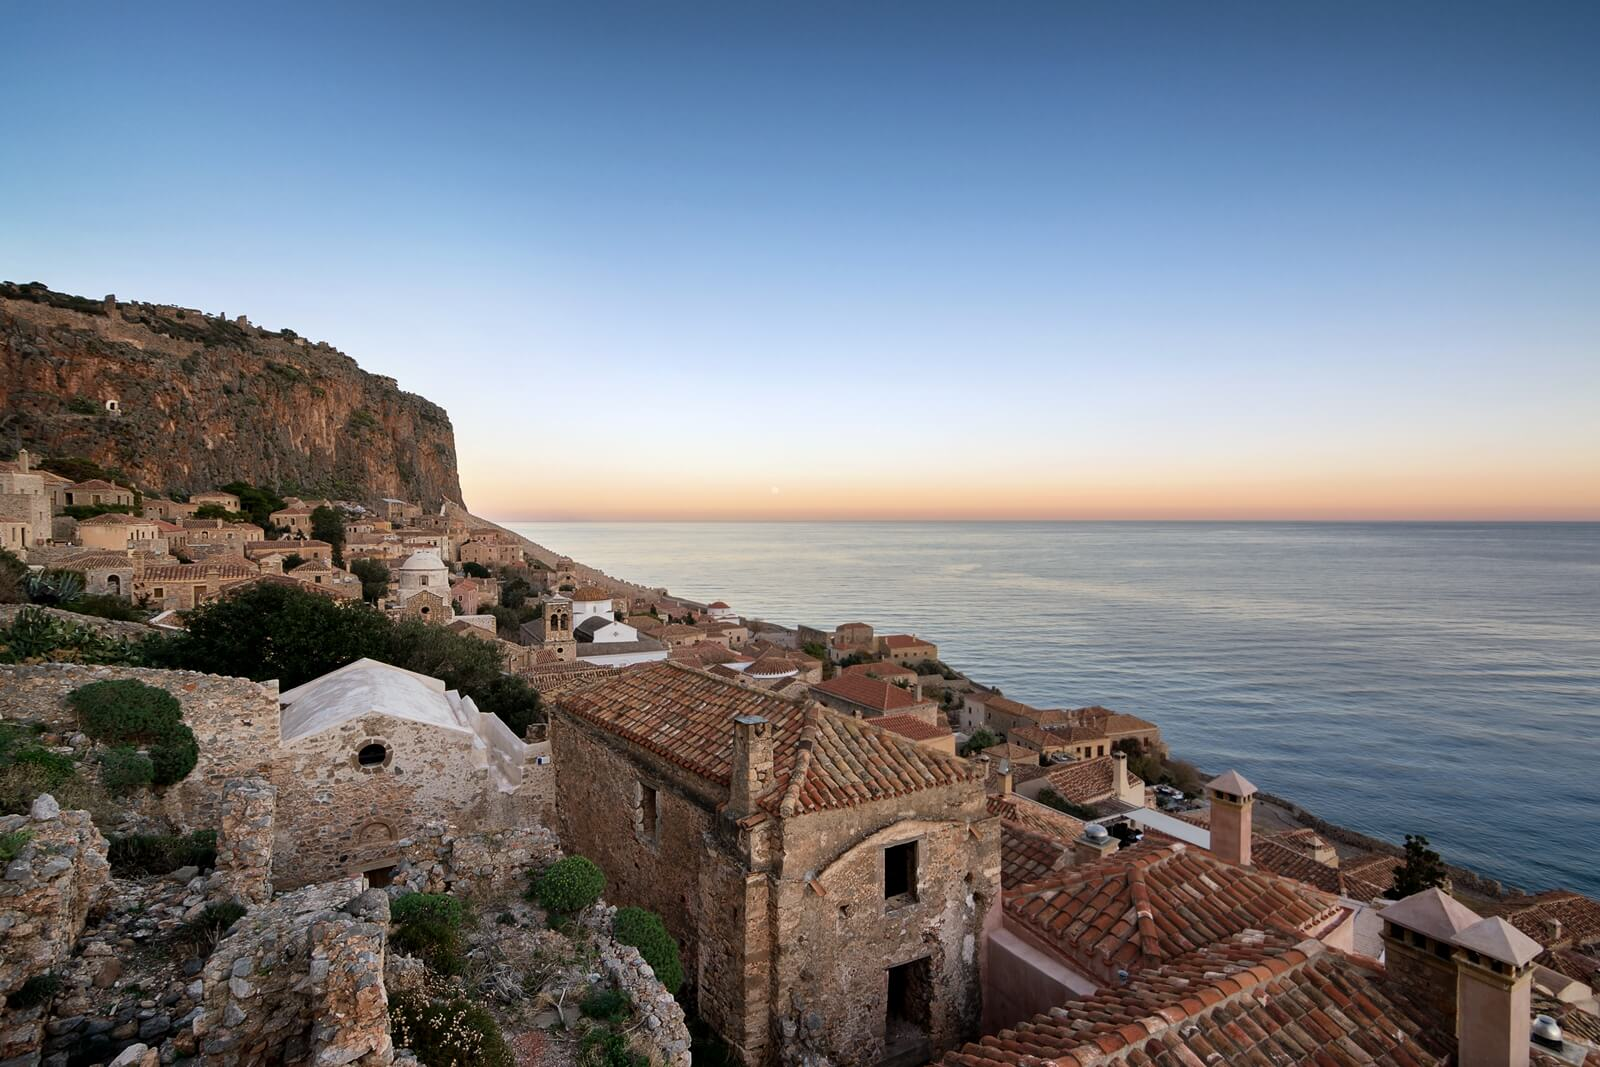 monemvasia-greece-lavienblog-allrightsreserved2